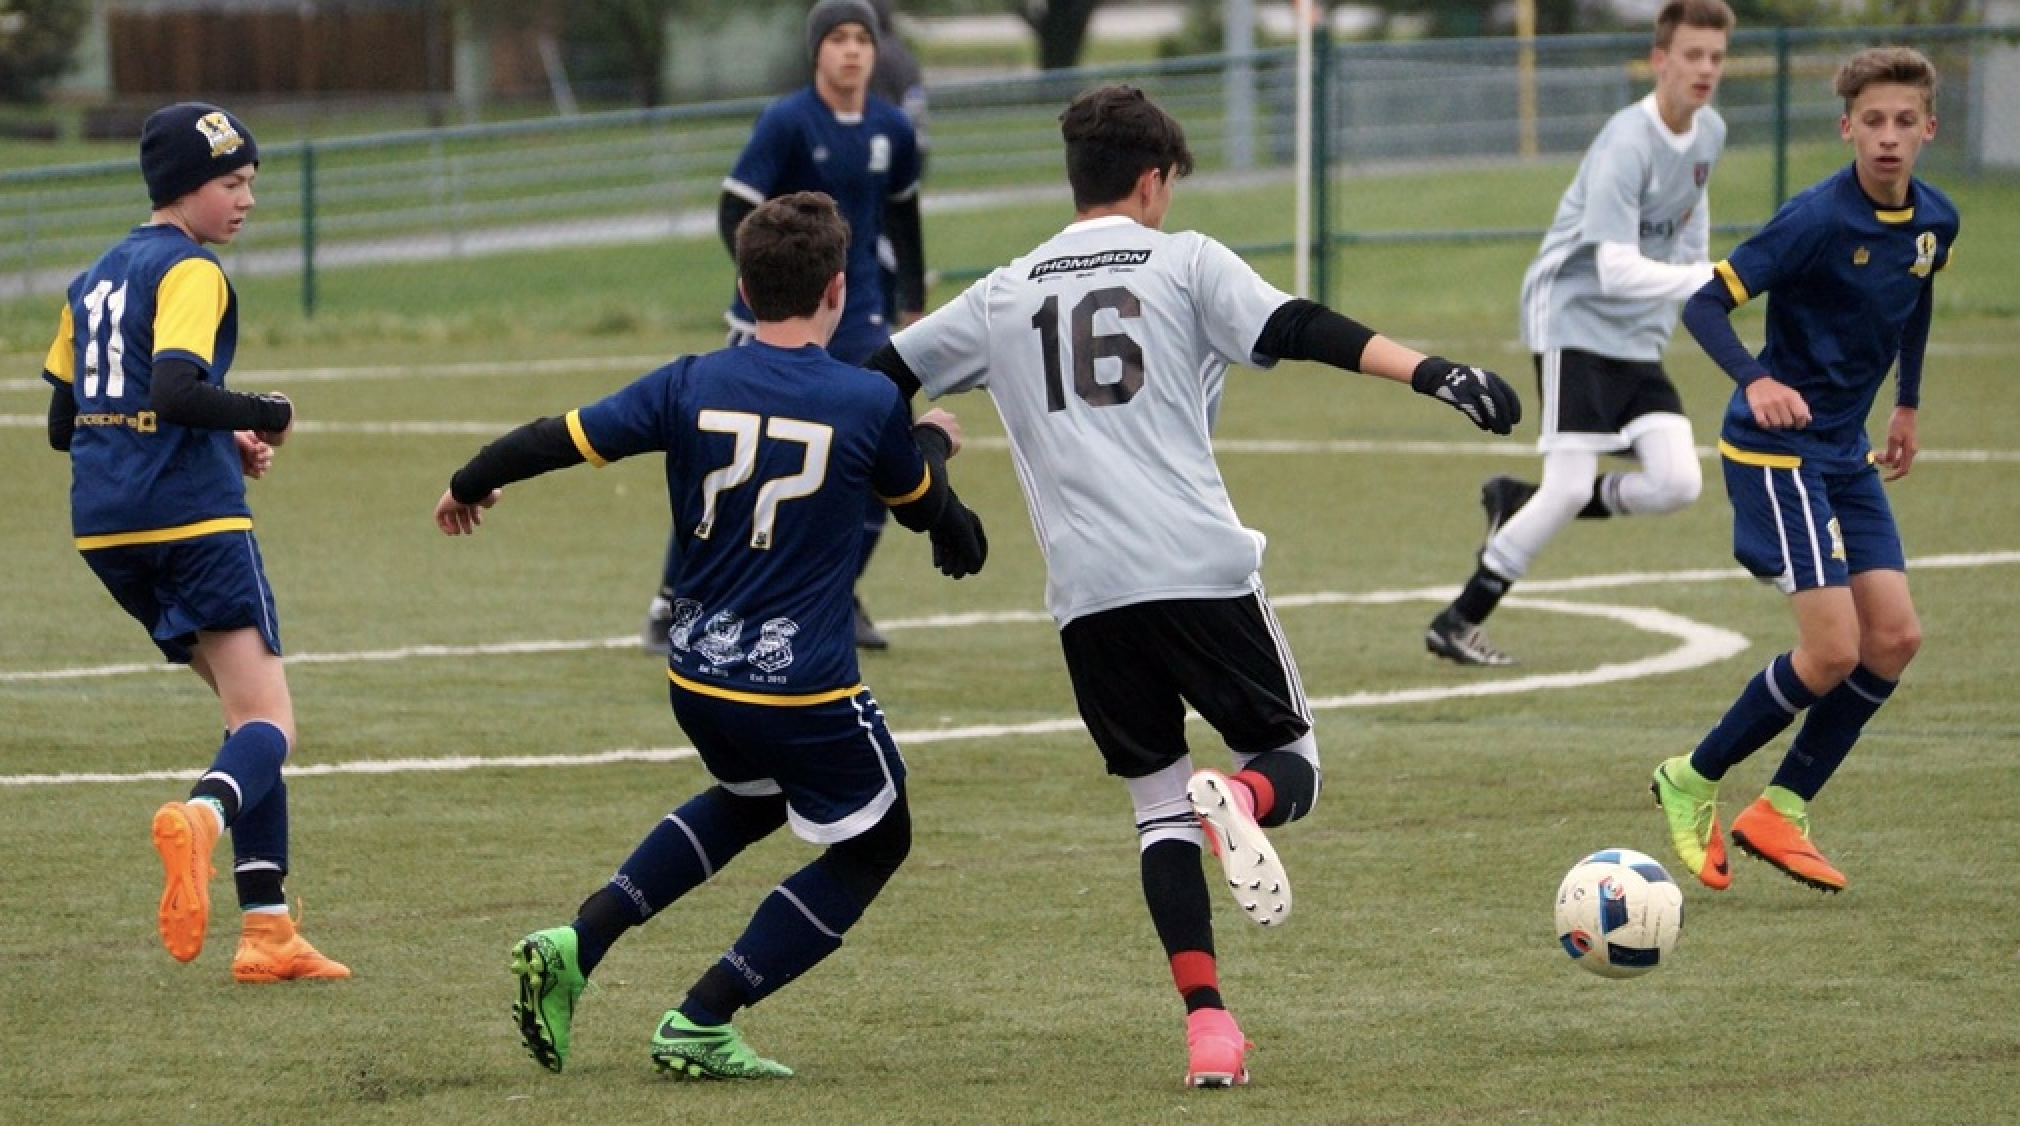 Demize U15 and U17 boys make finals at CCDP tournament